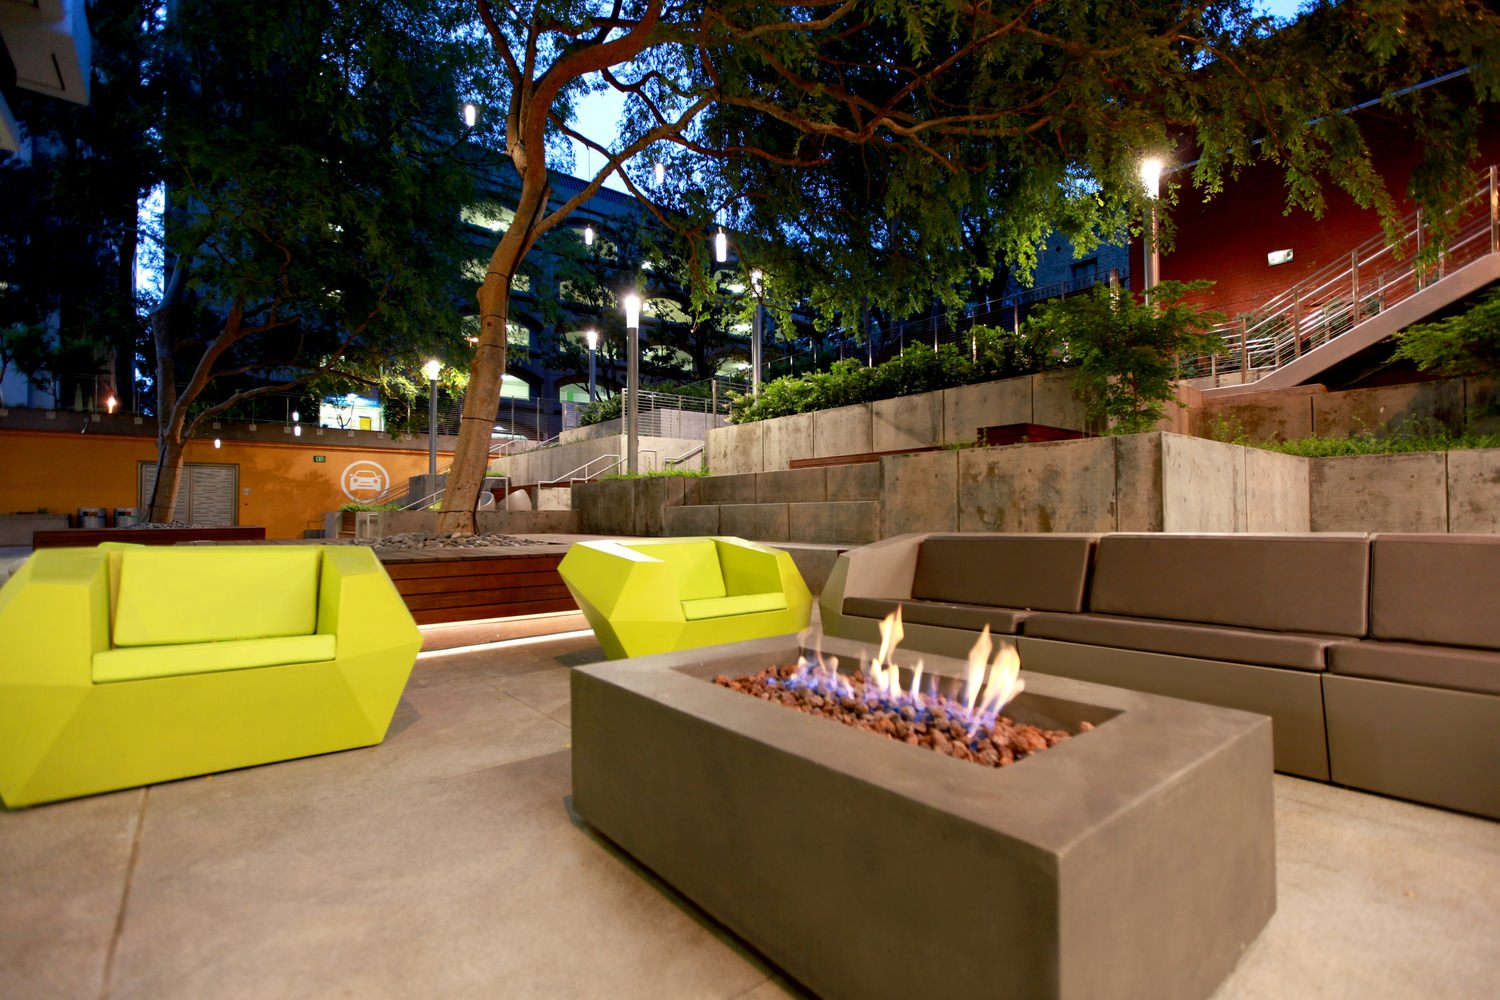 A sitting area features a fire place in a coffee table and many trees surrounding it.